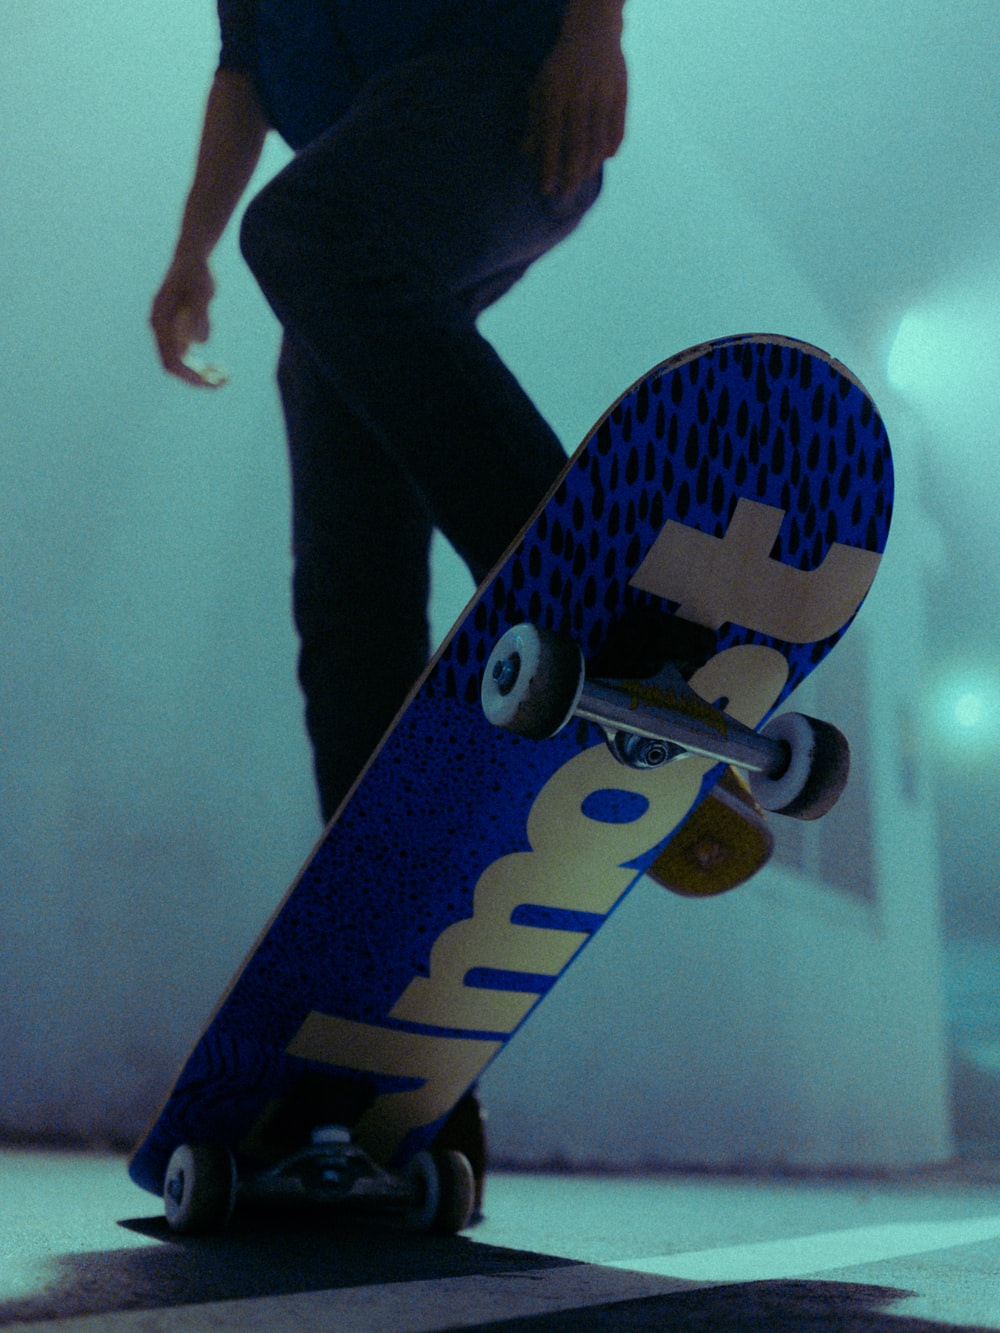 person in black pants standing on blue and white skateboard